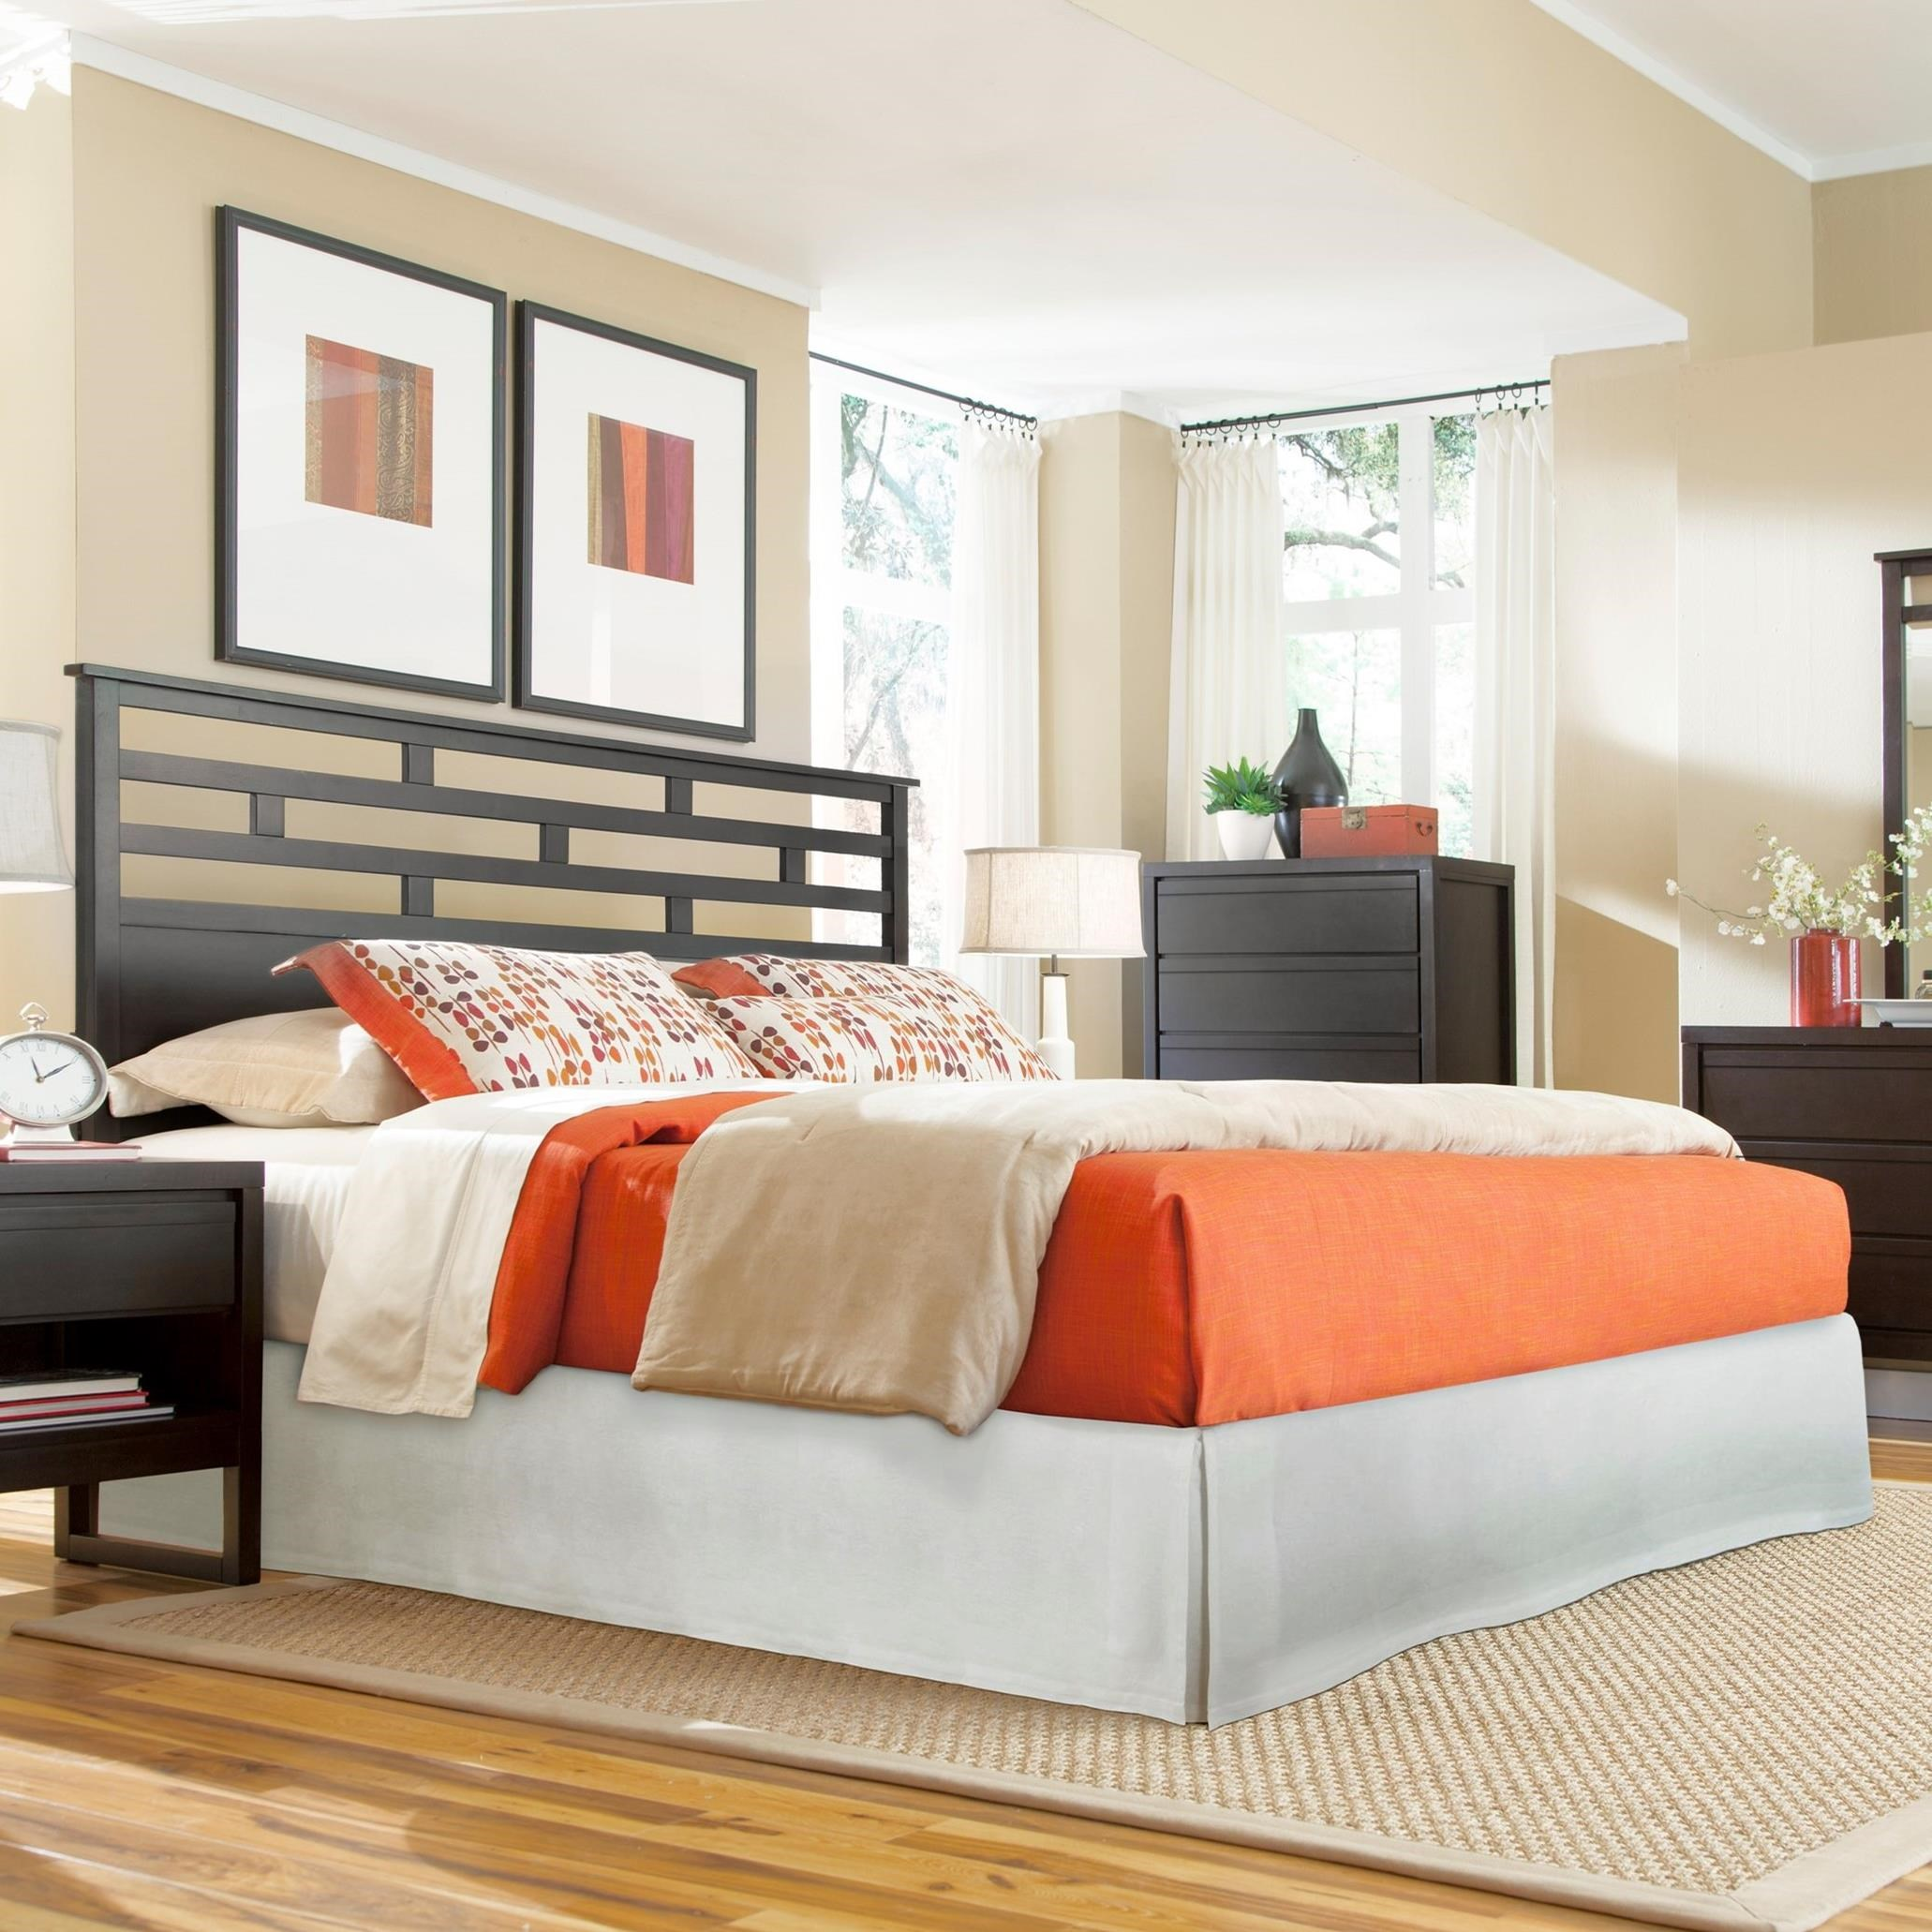 Athena King Panel Headboard by Progressive Furniture at Simply Home by Lindy's